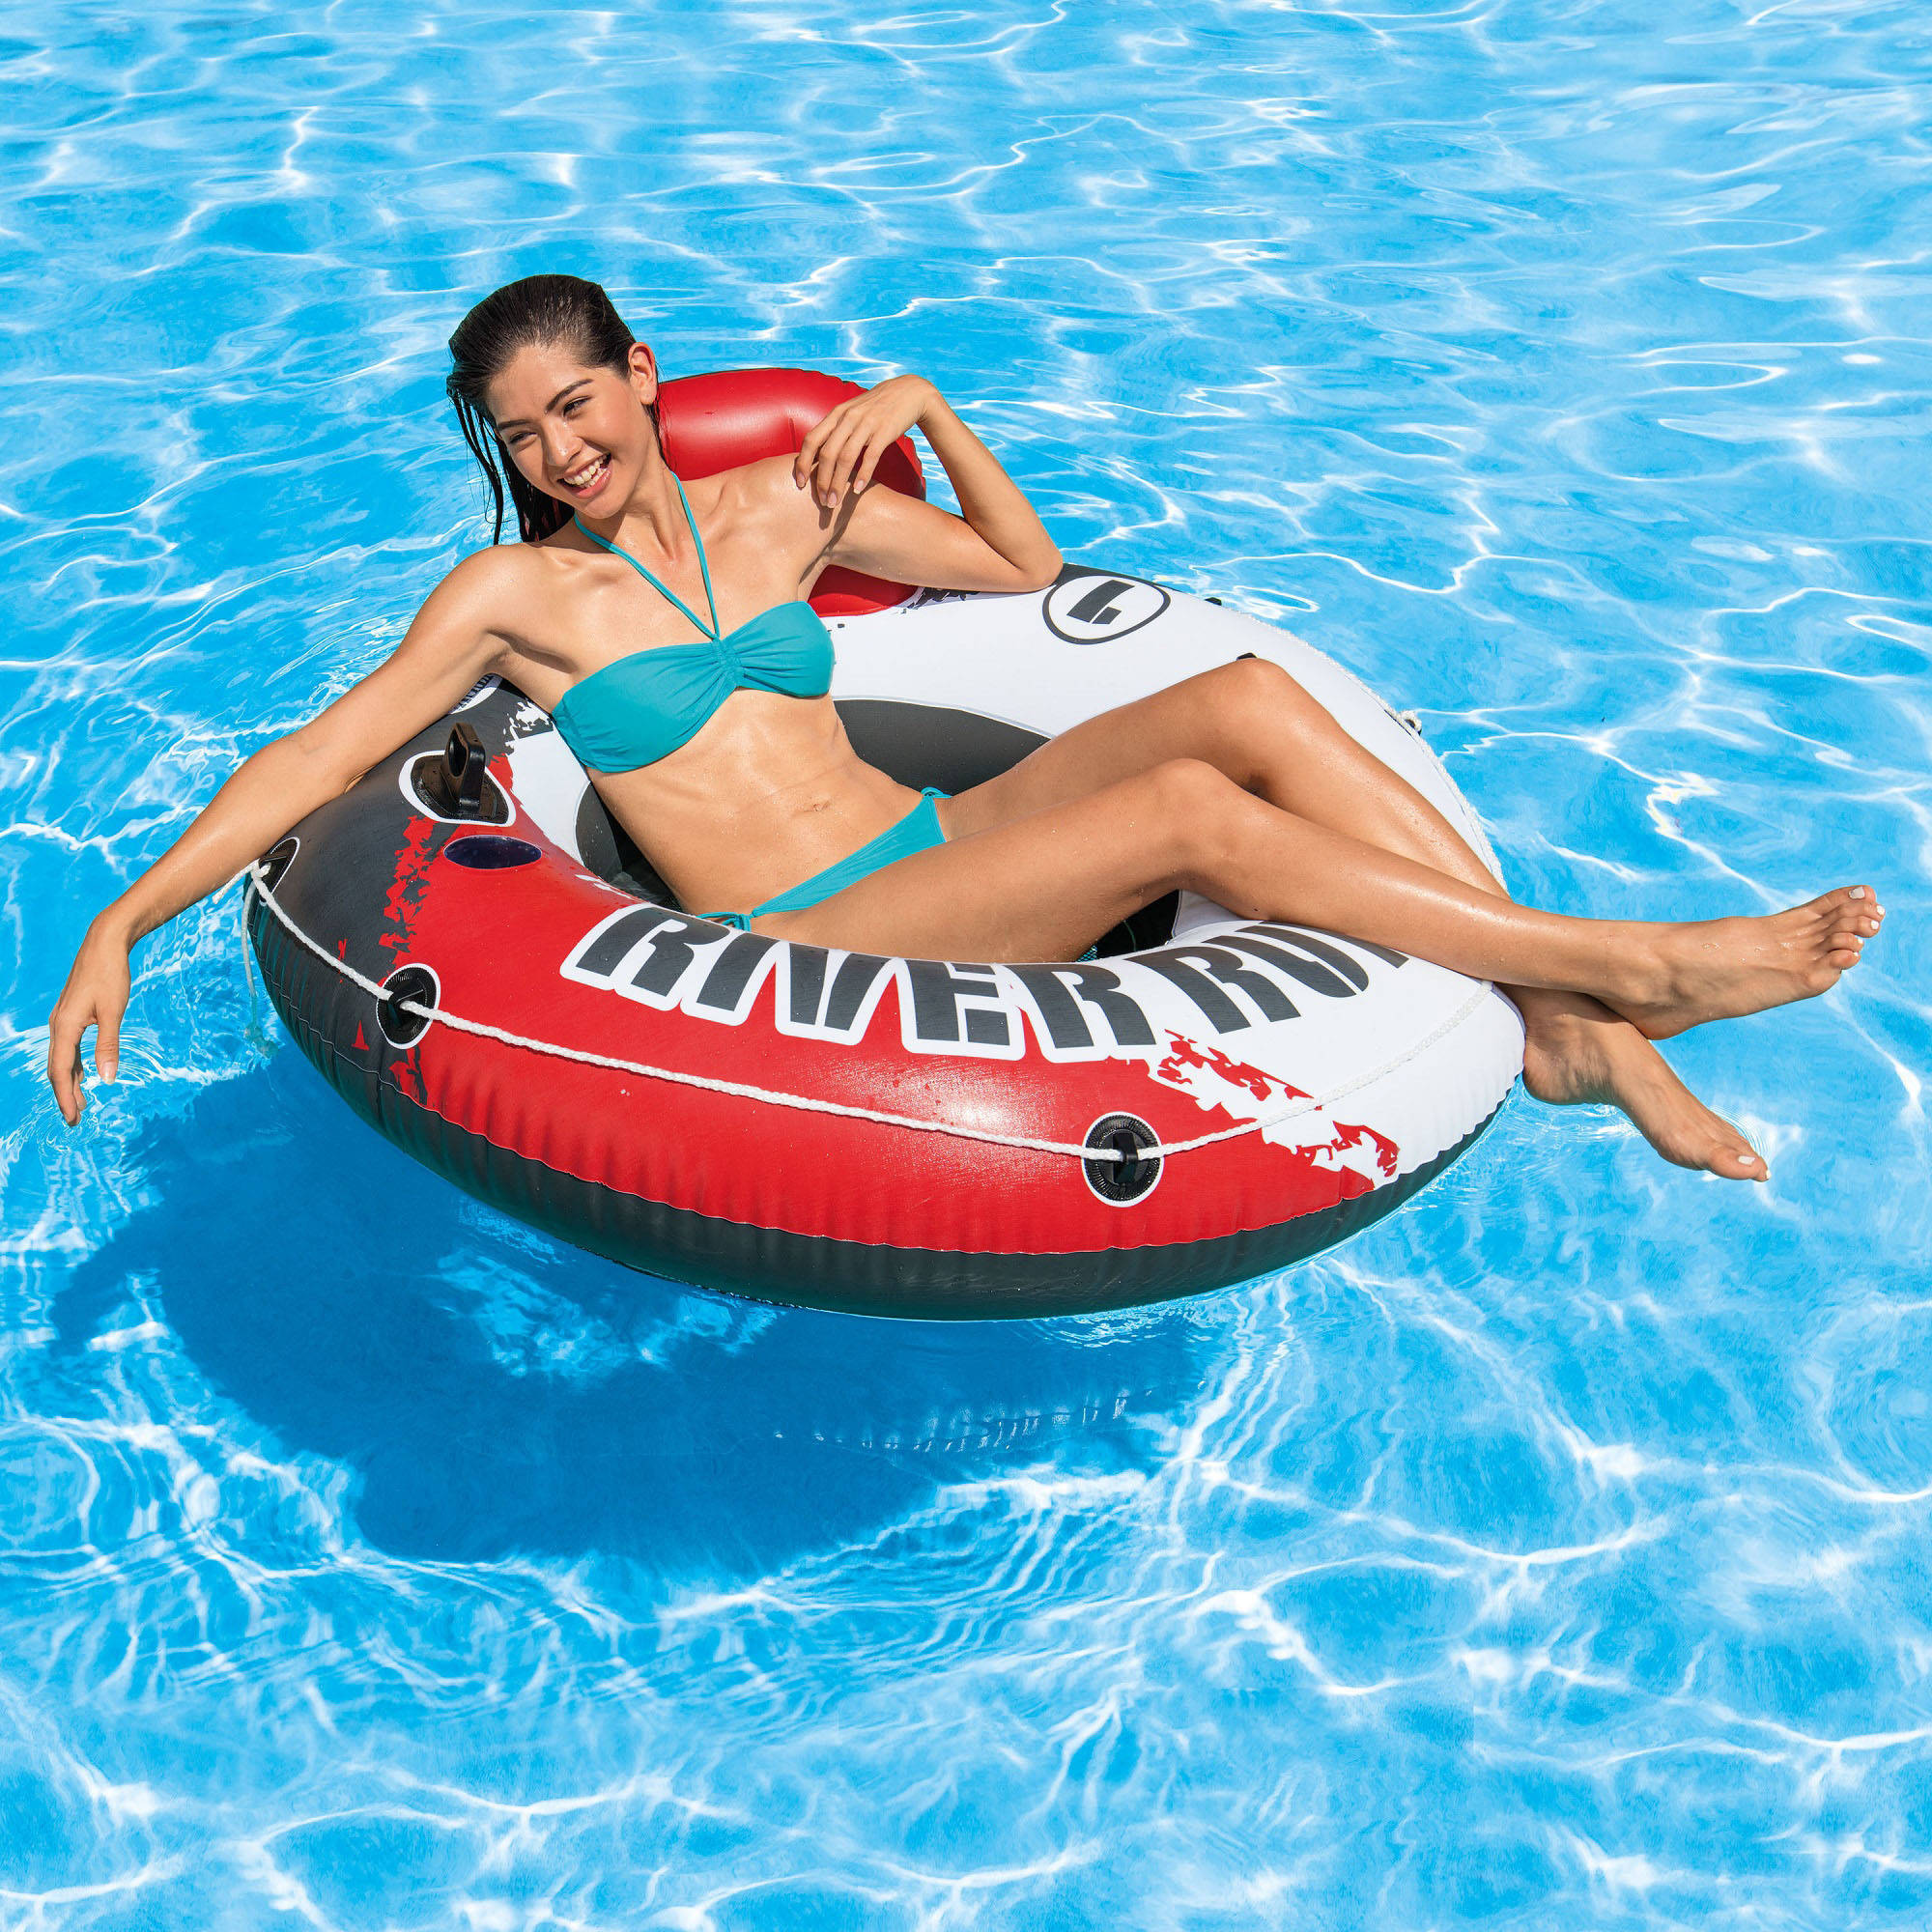 "Intex Inflatable Red River Run I Pool Tube, 53"" by Intex"